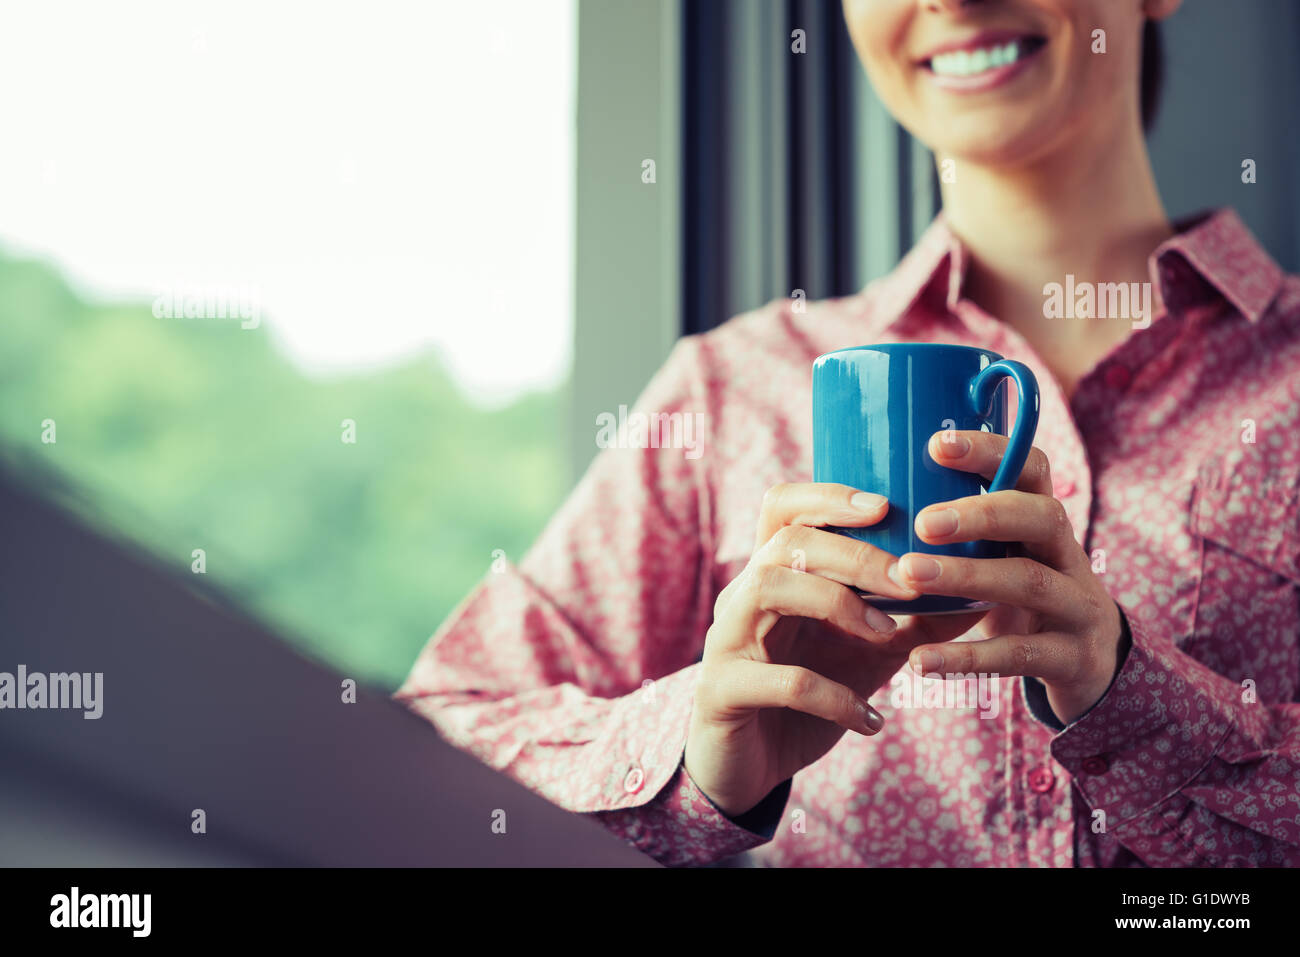 Woman having a relaxing coffee break at window, she is smiling and holding a mug - Stock Image